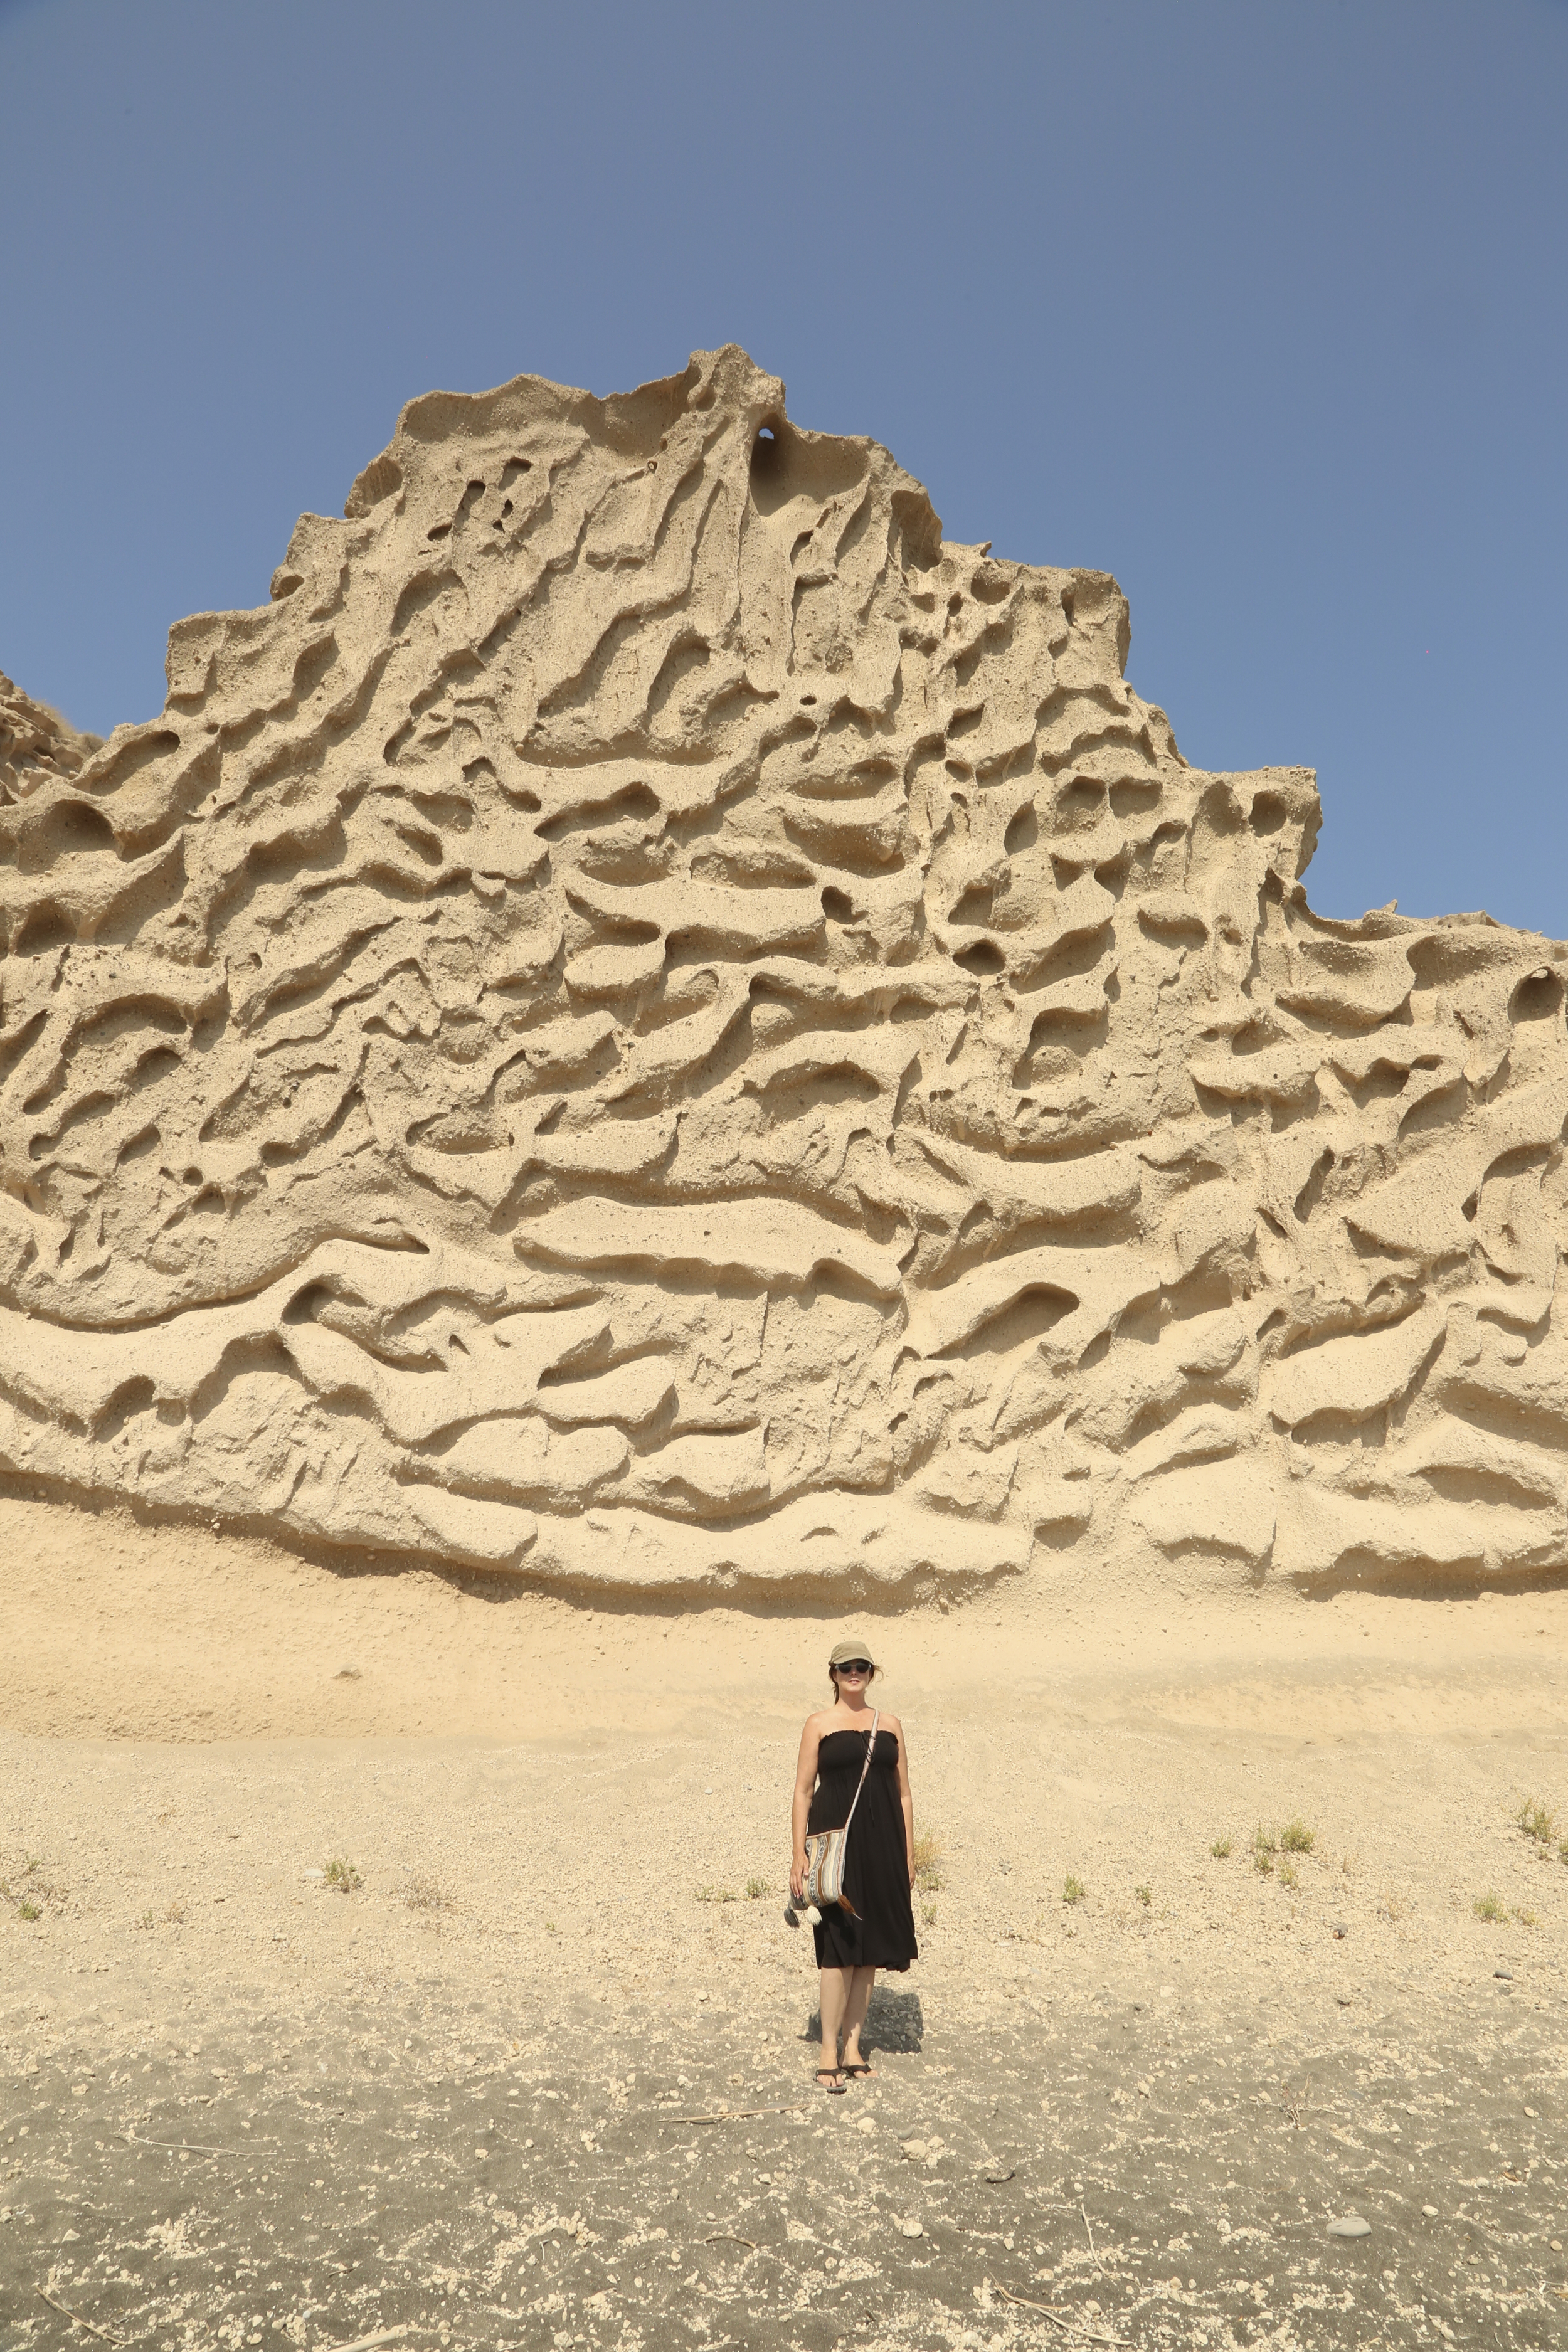 Michelle Larson   – On the island of Santorini, the wind has carved the sand hillsides into textured walls. Nature's art fascinates me.